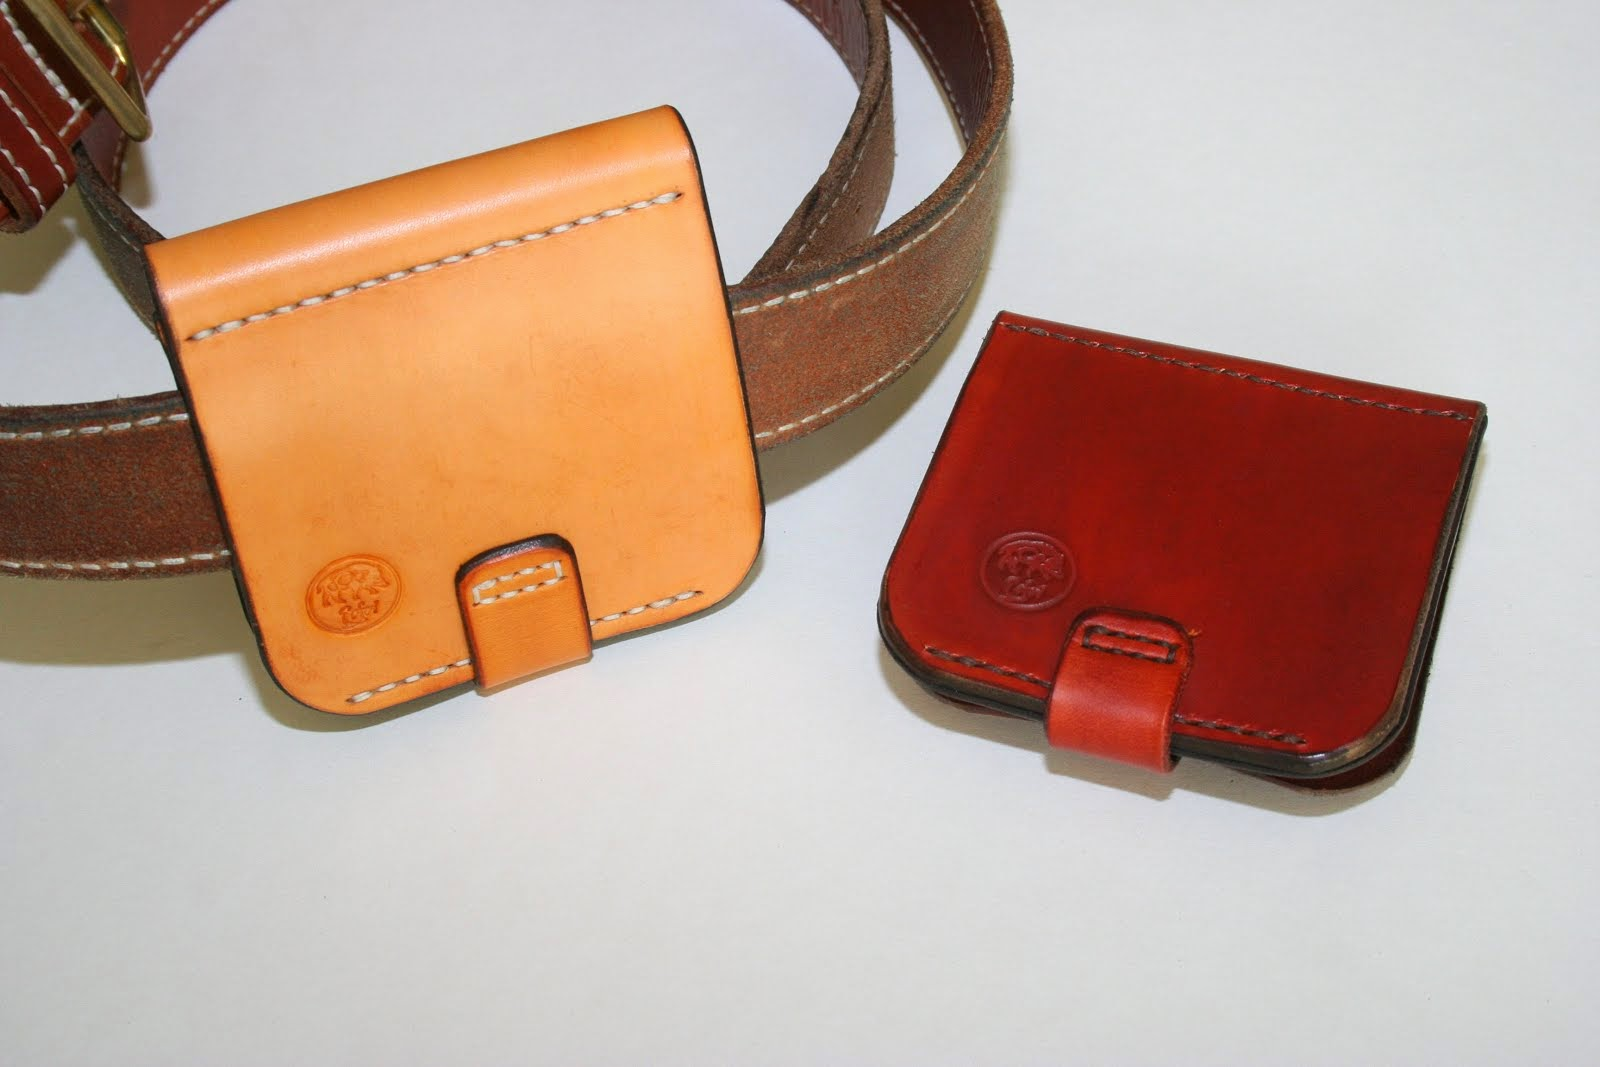 Cartridge pouch - rear view